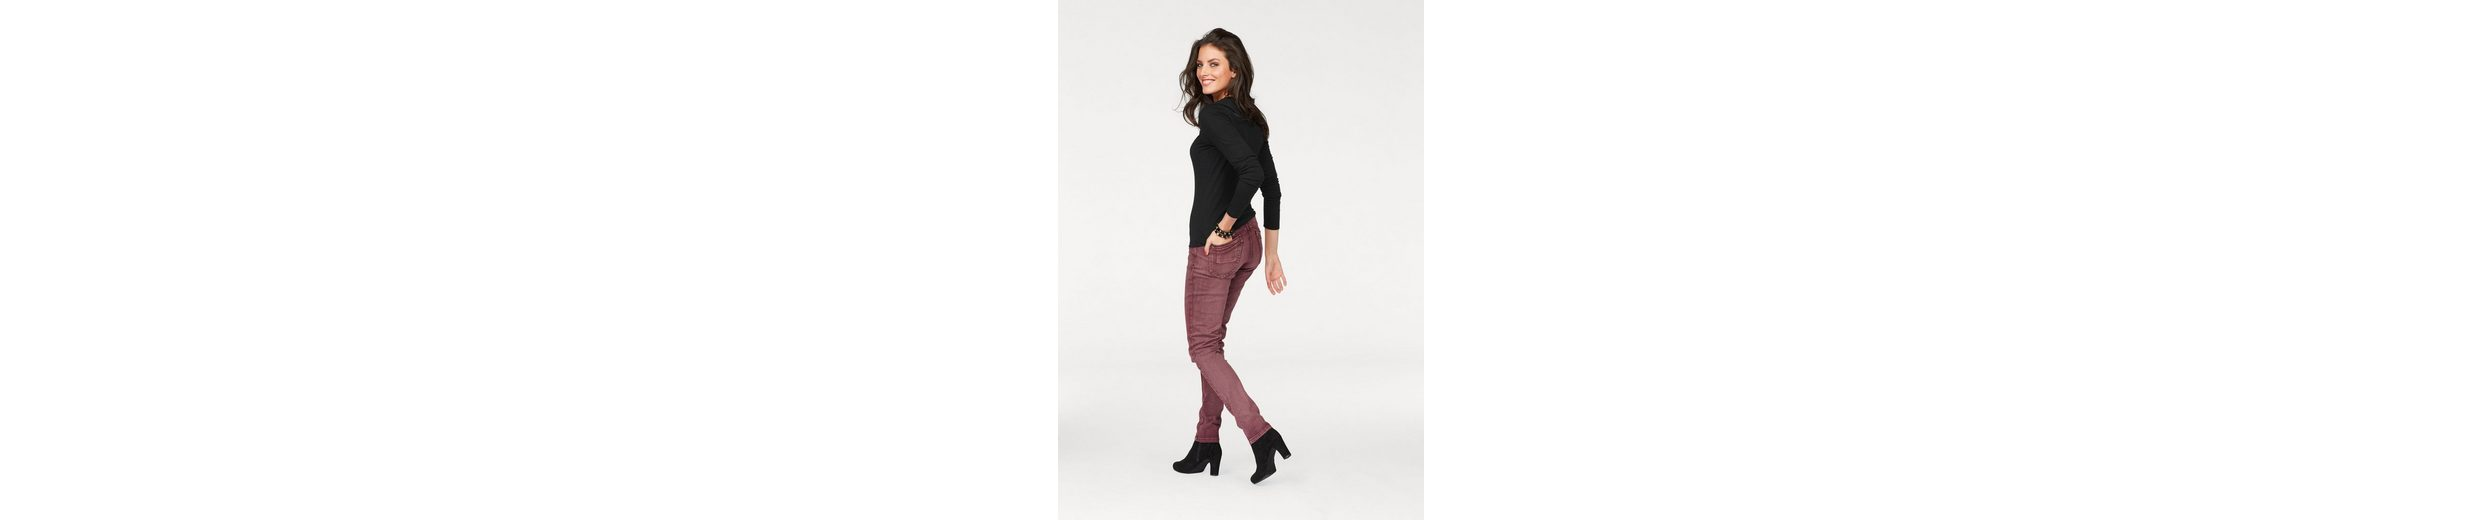 Aniston Skinny-fit-Jeans, in Crashoptik und used Washung